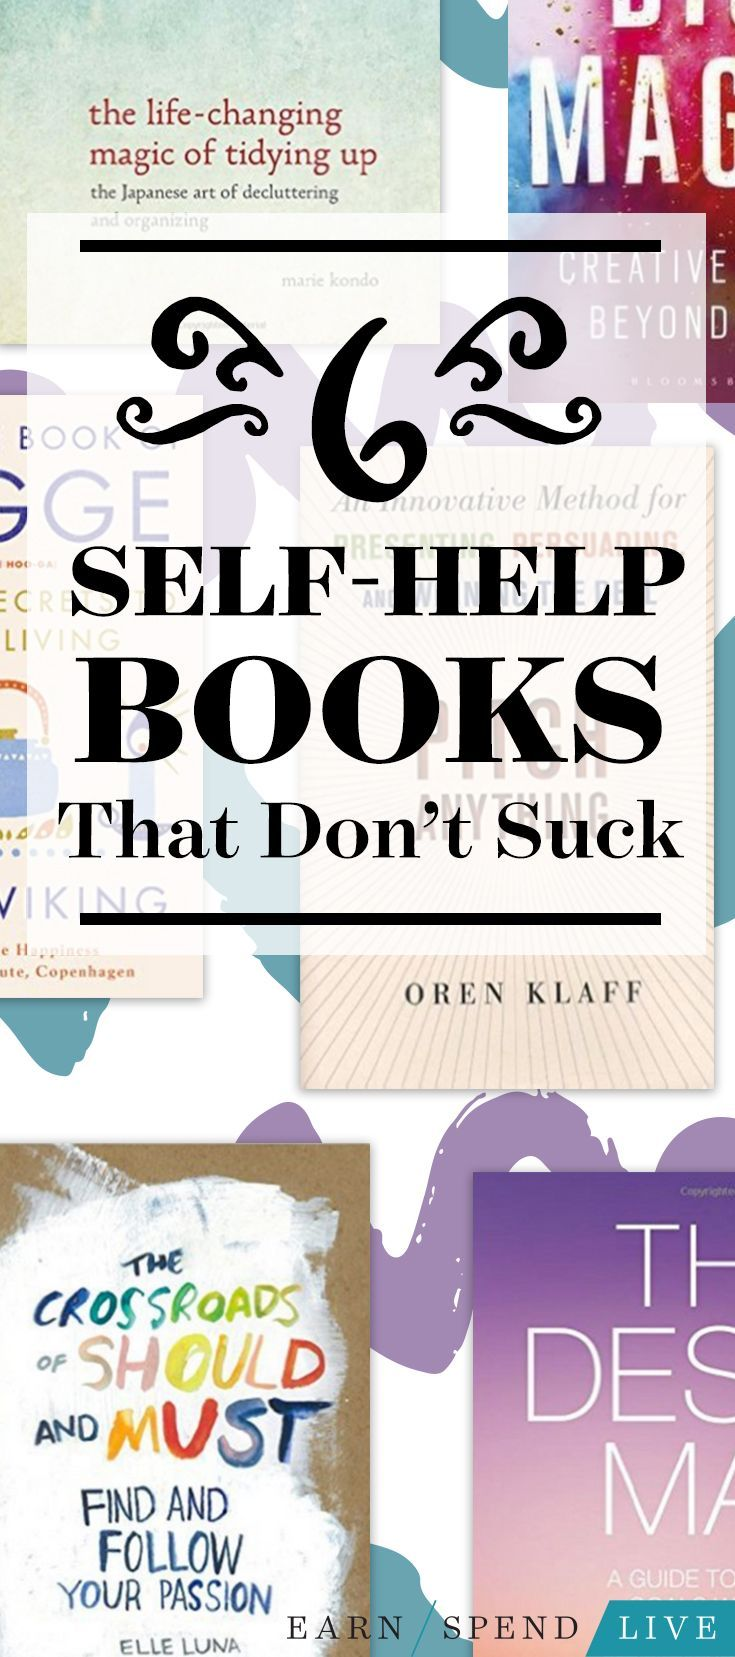 If you're looking for help figuring things out in your life, make some big decisions, or create a life you're excited to live, check out these books.